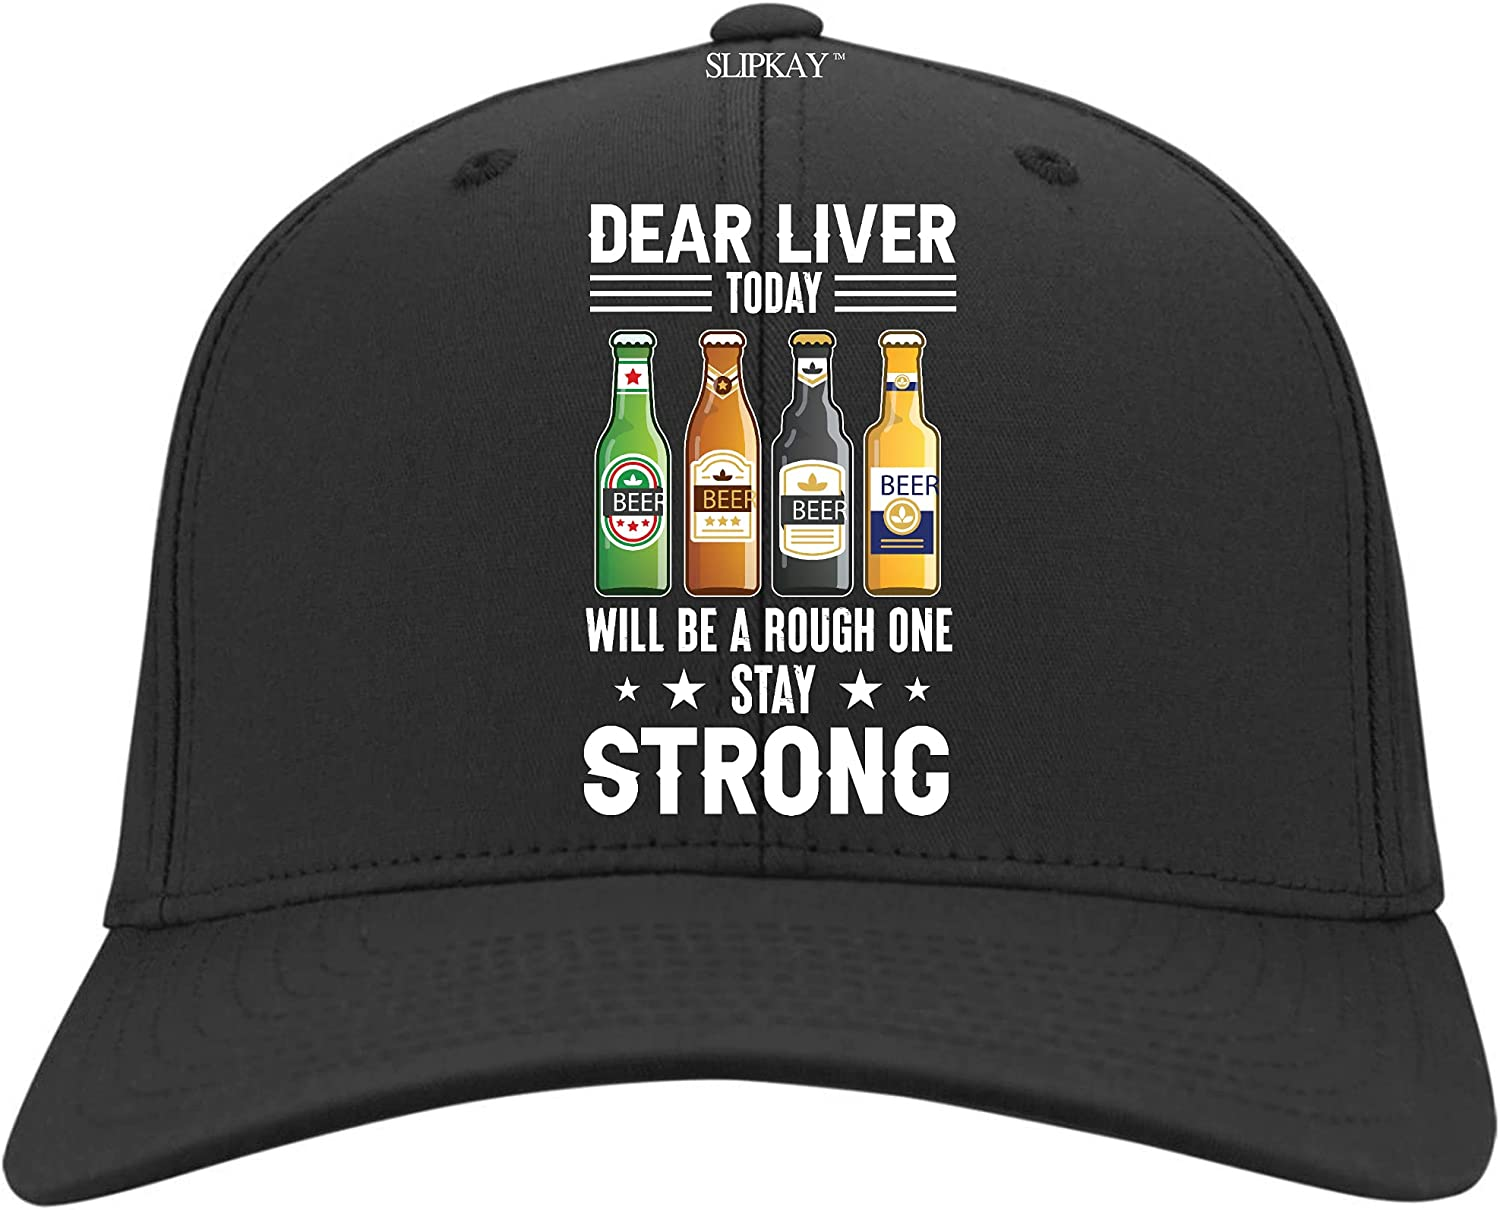 Dear Liver Today Will Be A Rough One Stay Strong Hat,Twill Cap